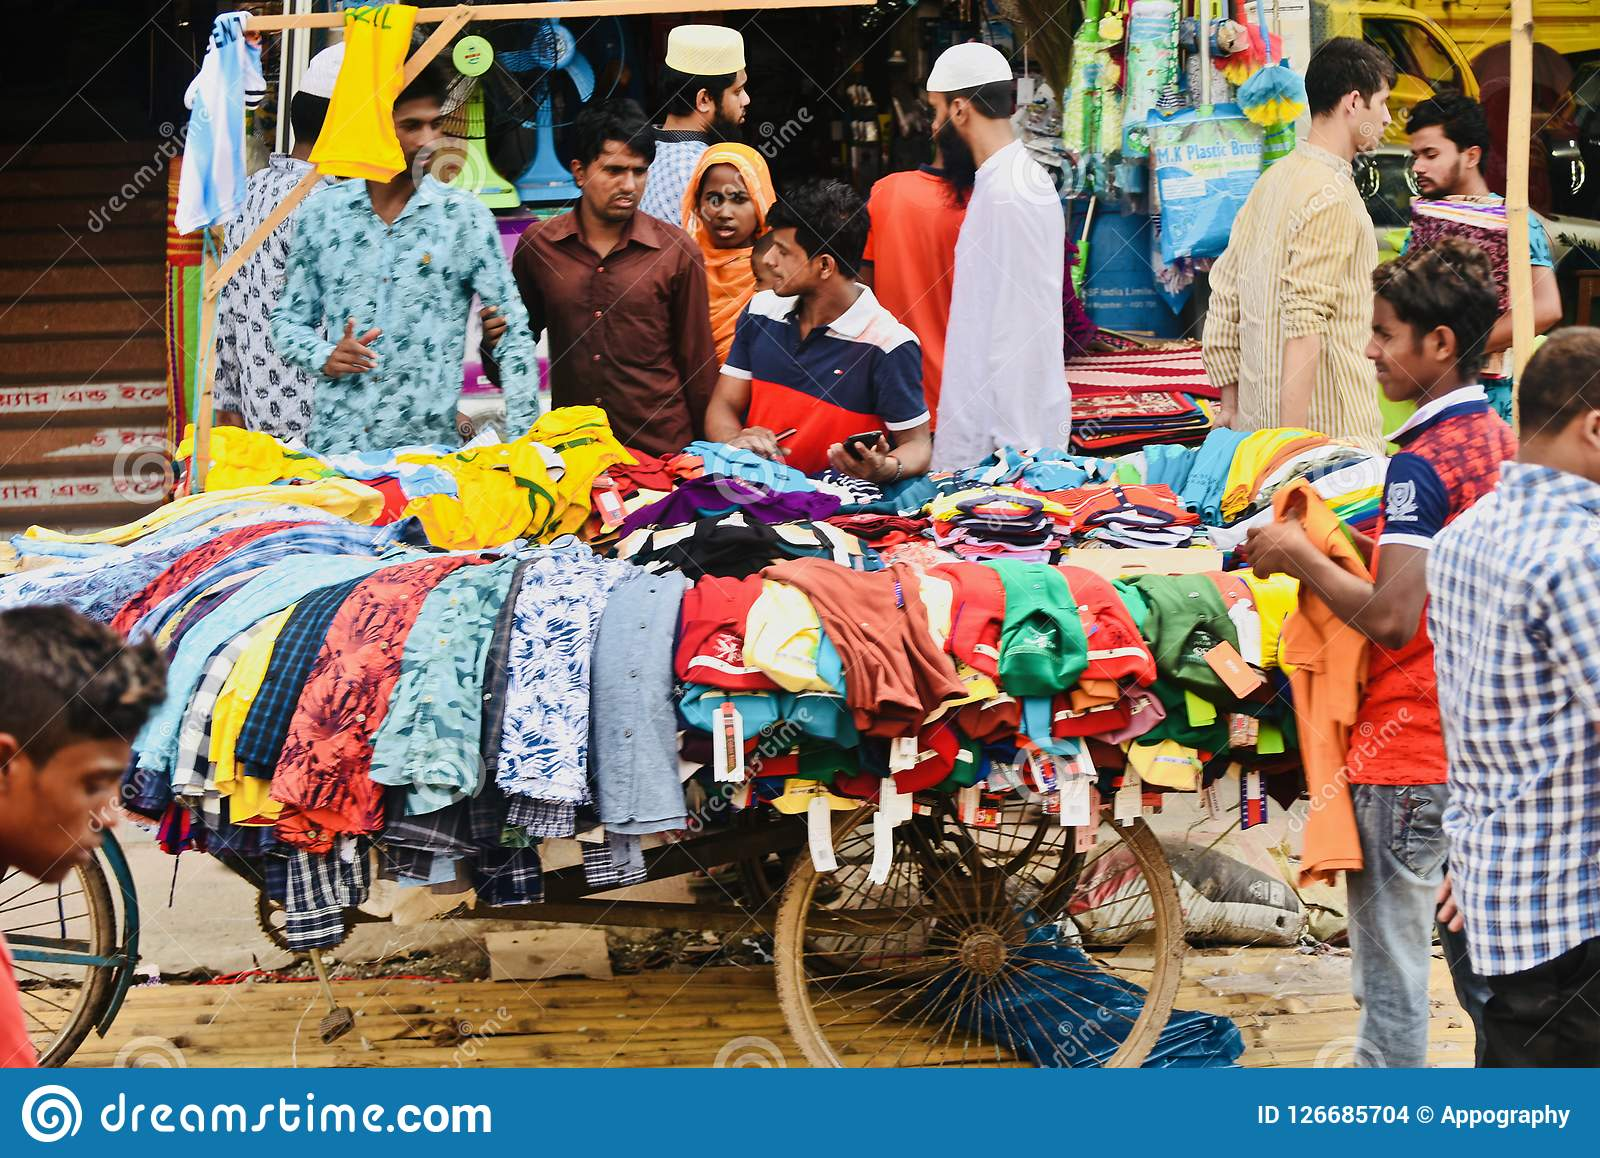 People shopping from a street seller in Bangladesh unique photo